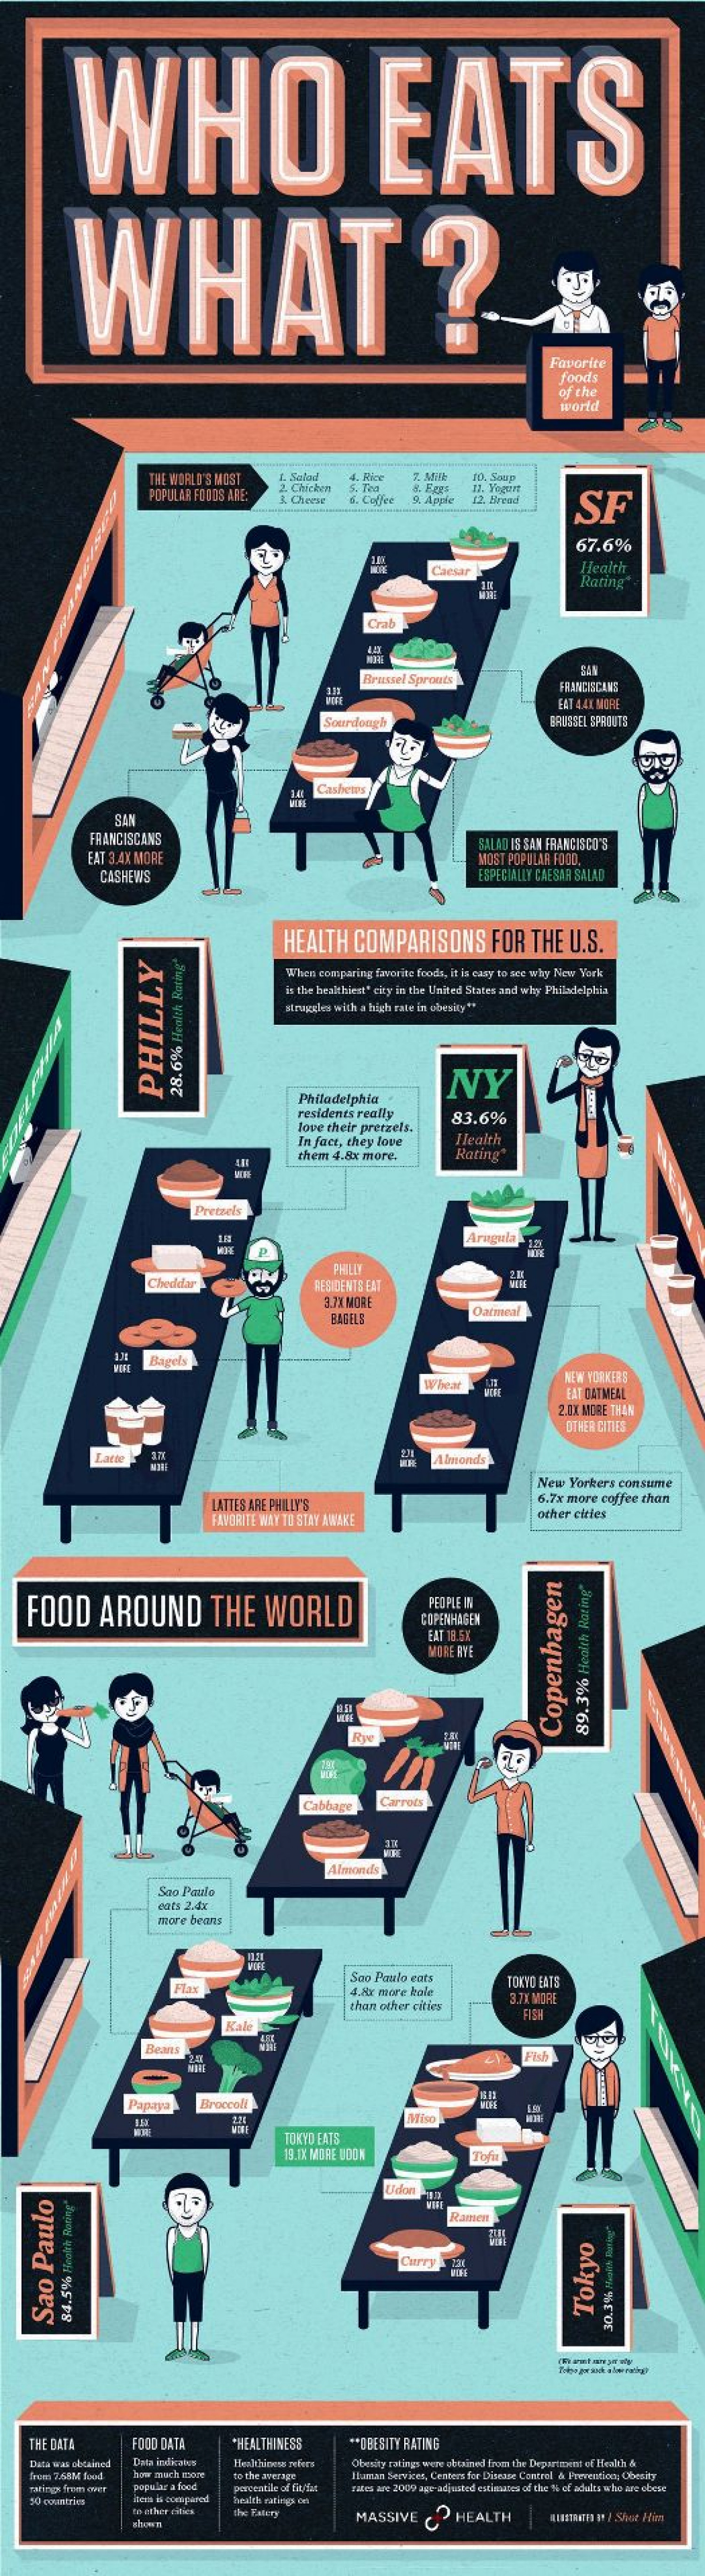 Who Eats What? Infographic